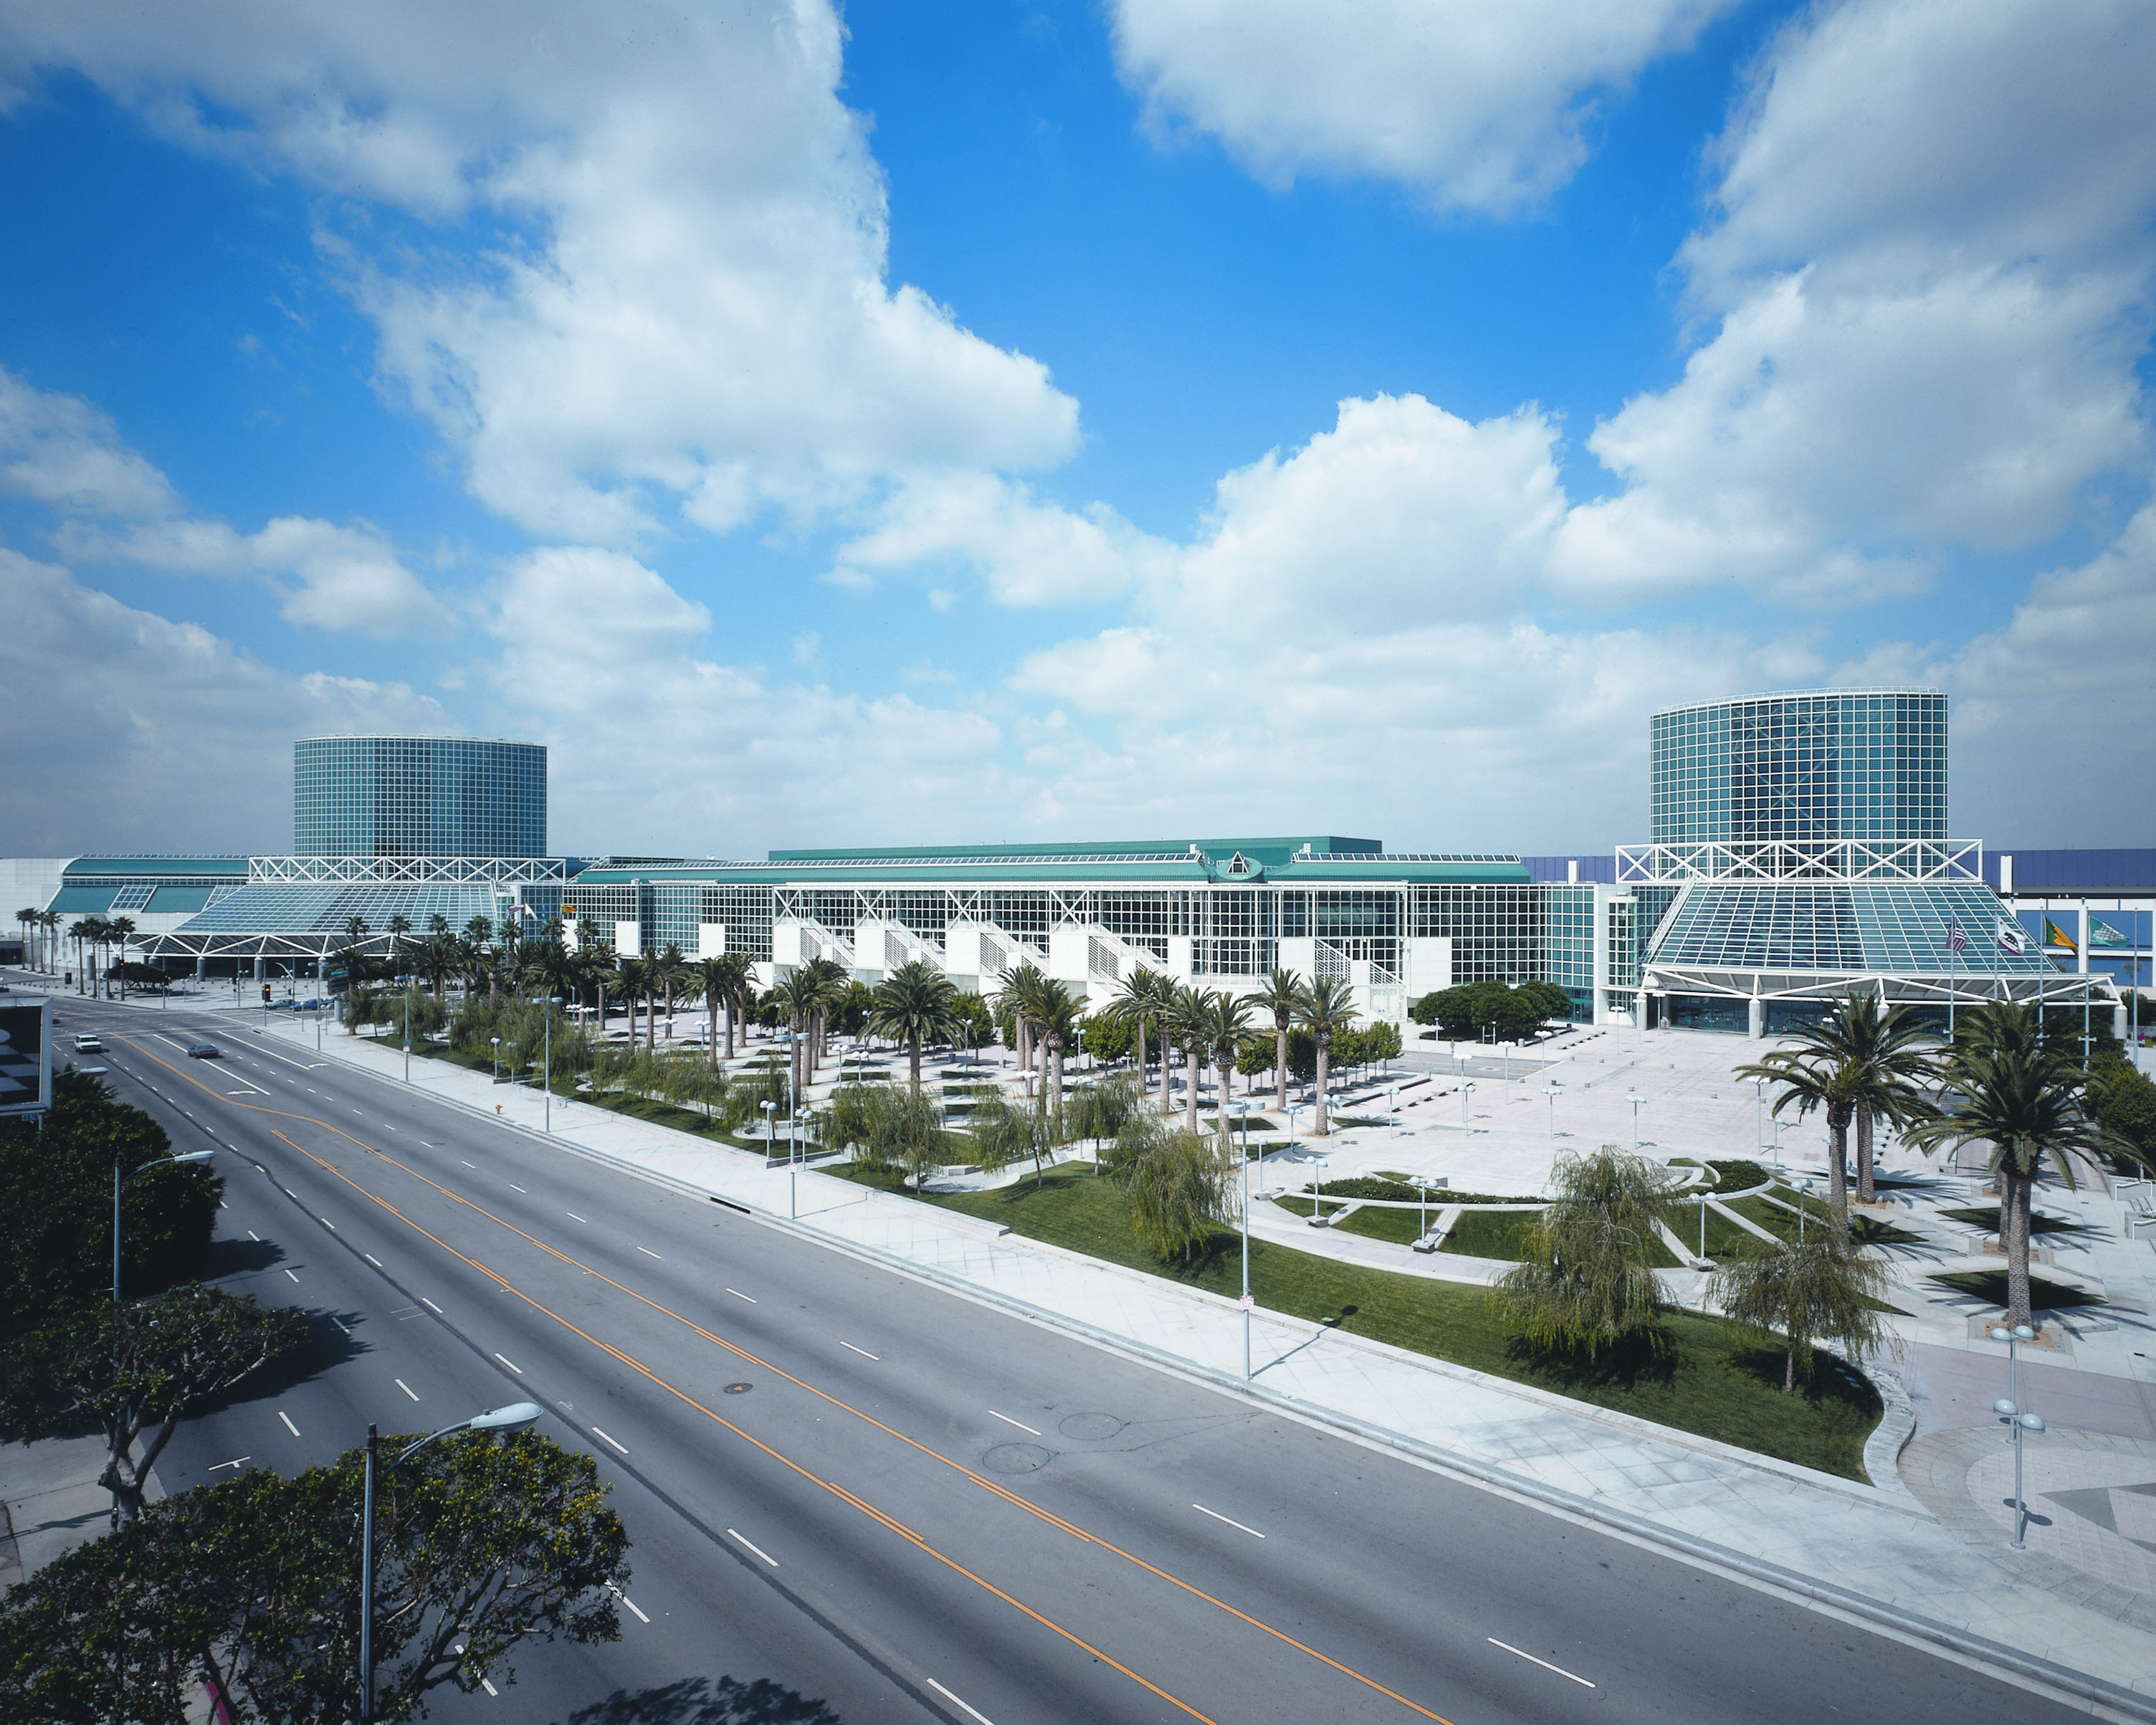 Top leed certified coastal destinations for the summer us the leed certified los angeles convention center hosted greenbuild 2016 xflitez Image collections